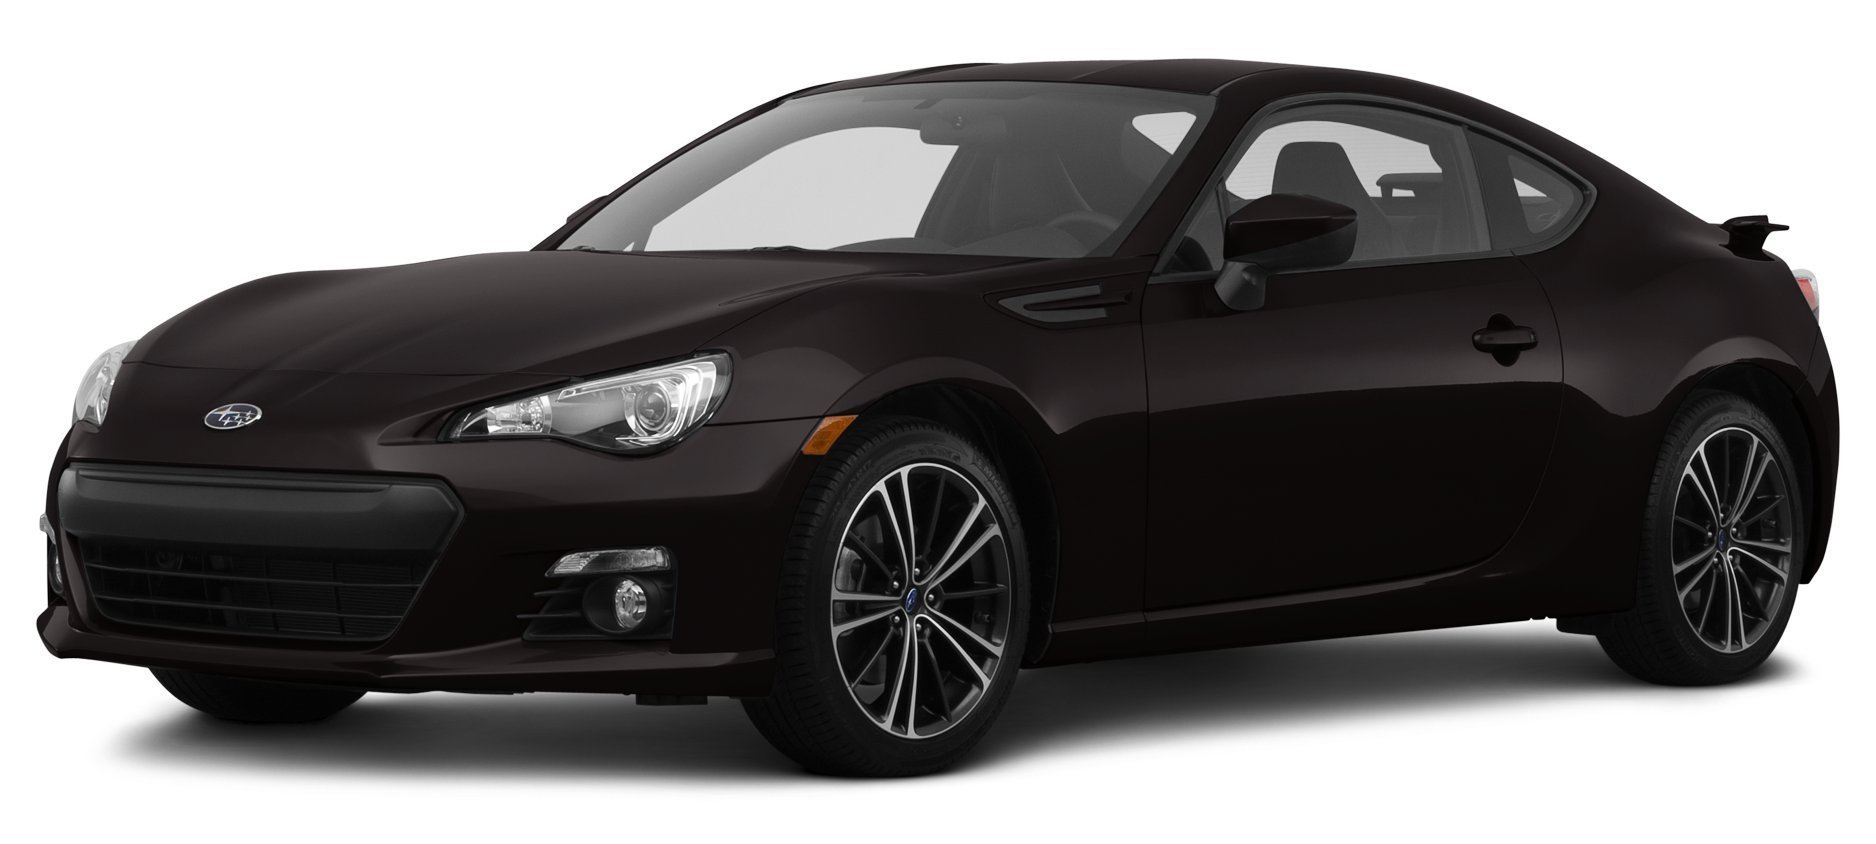 2014 subaru brz limited, 2-door coupe manual transmission